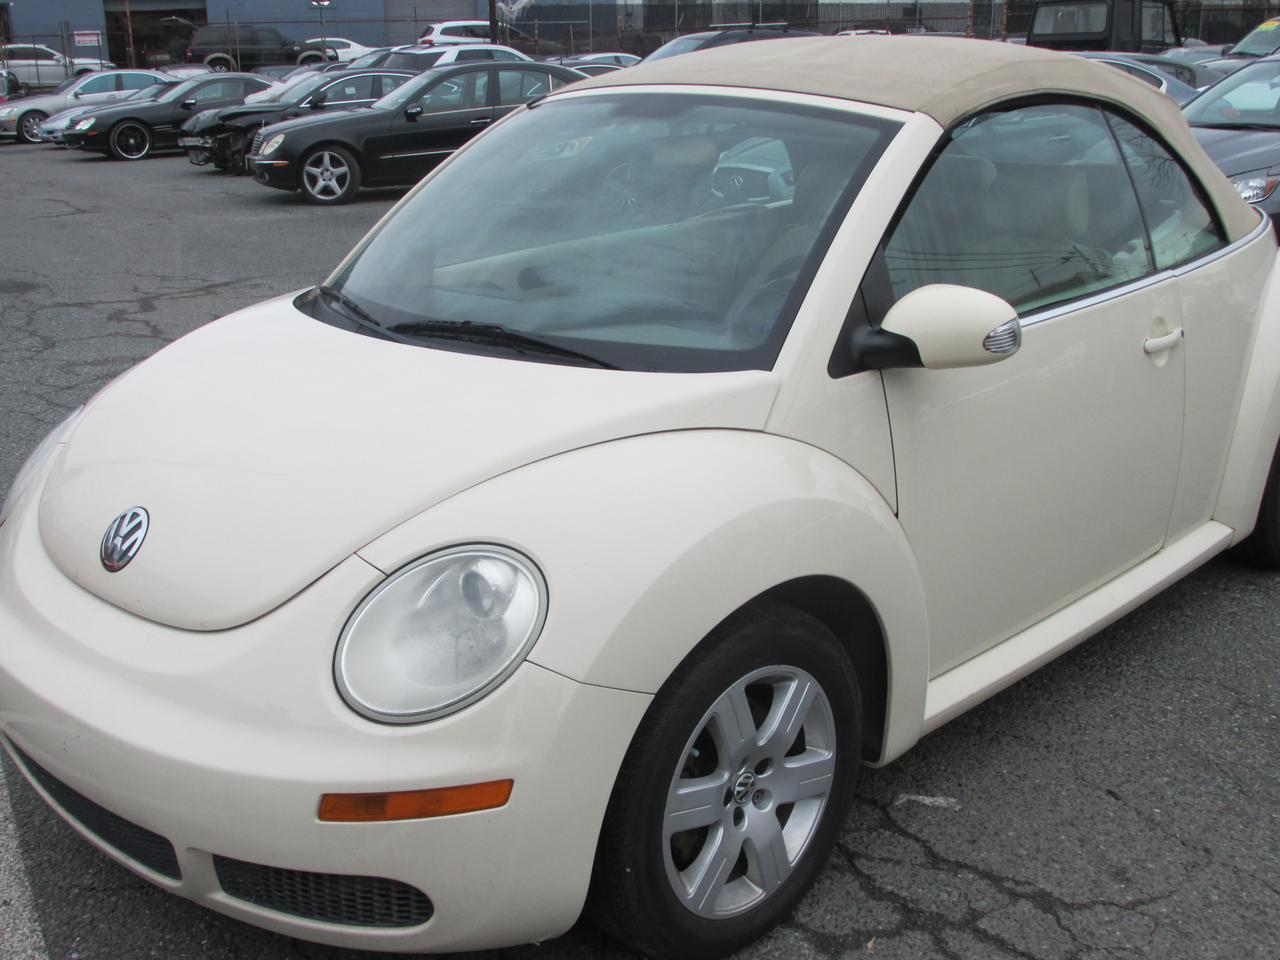 2007 Volkswagen New Beetle 2.5L PZEV Convertible Hyattsville MD